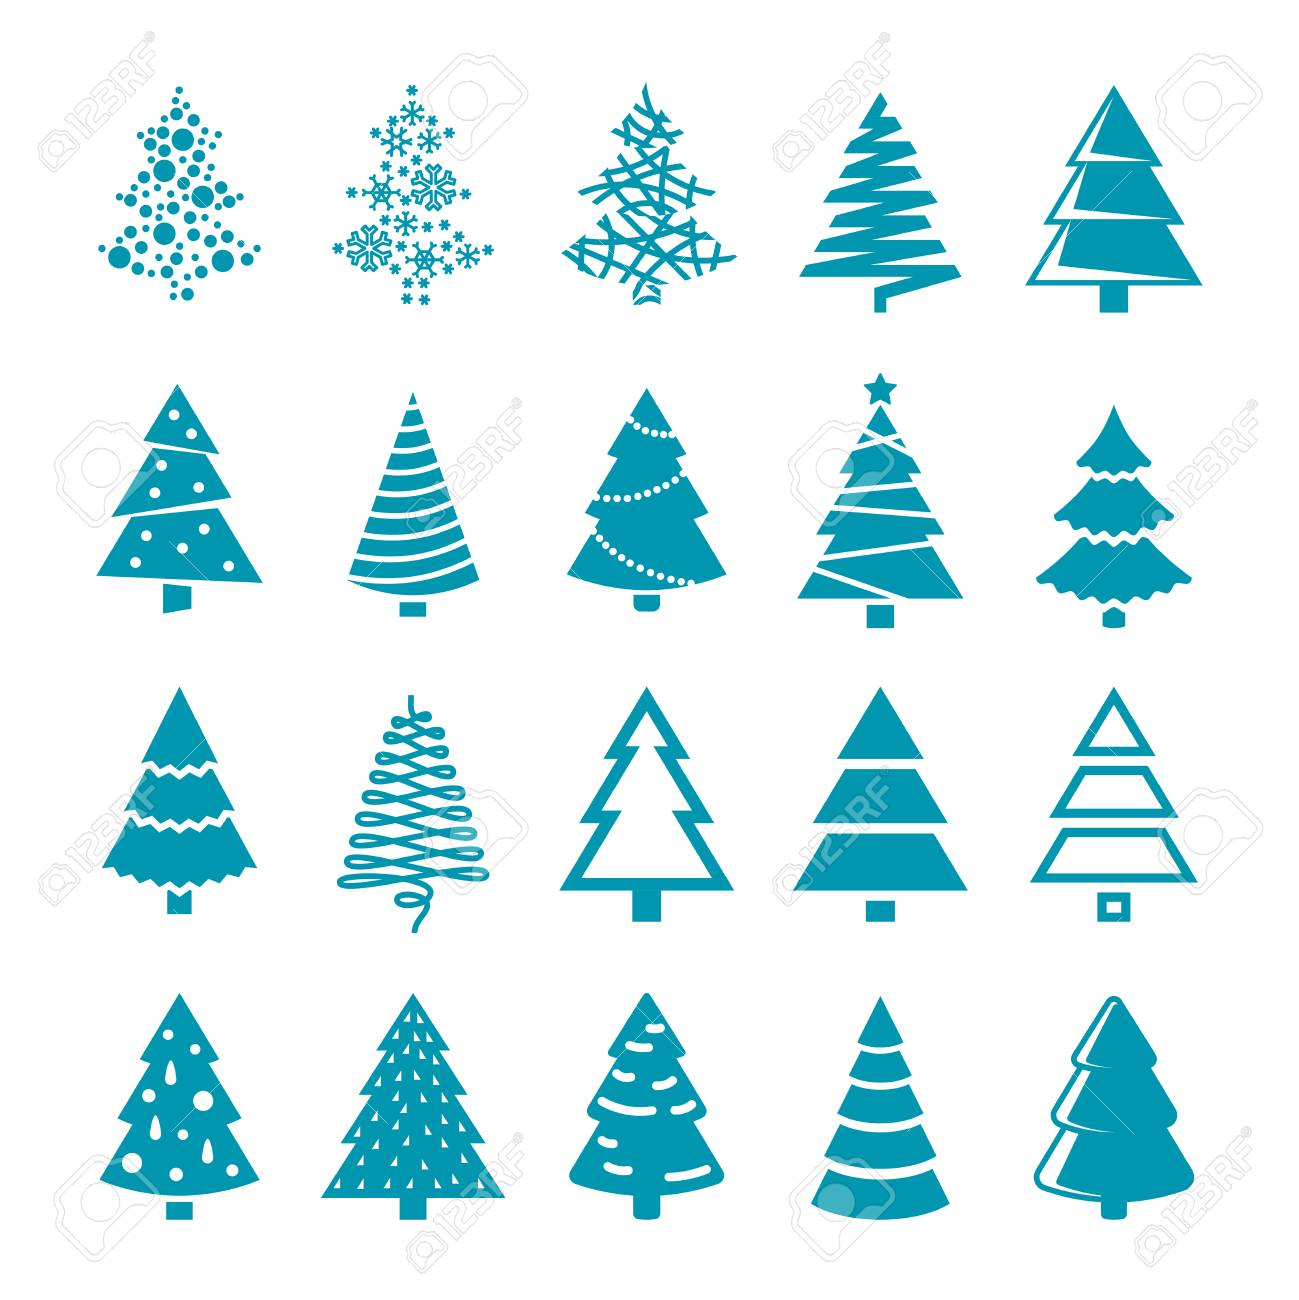 Christmas Trees Silhouette.Black Silhouette Christmas Trees Vector Stylized Simple Symbols